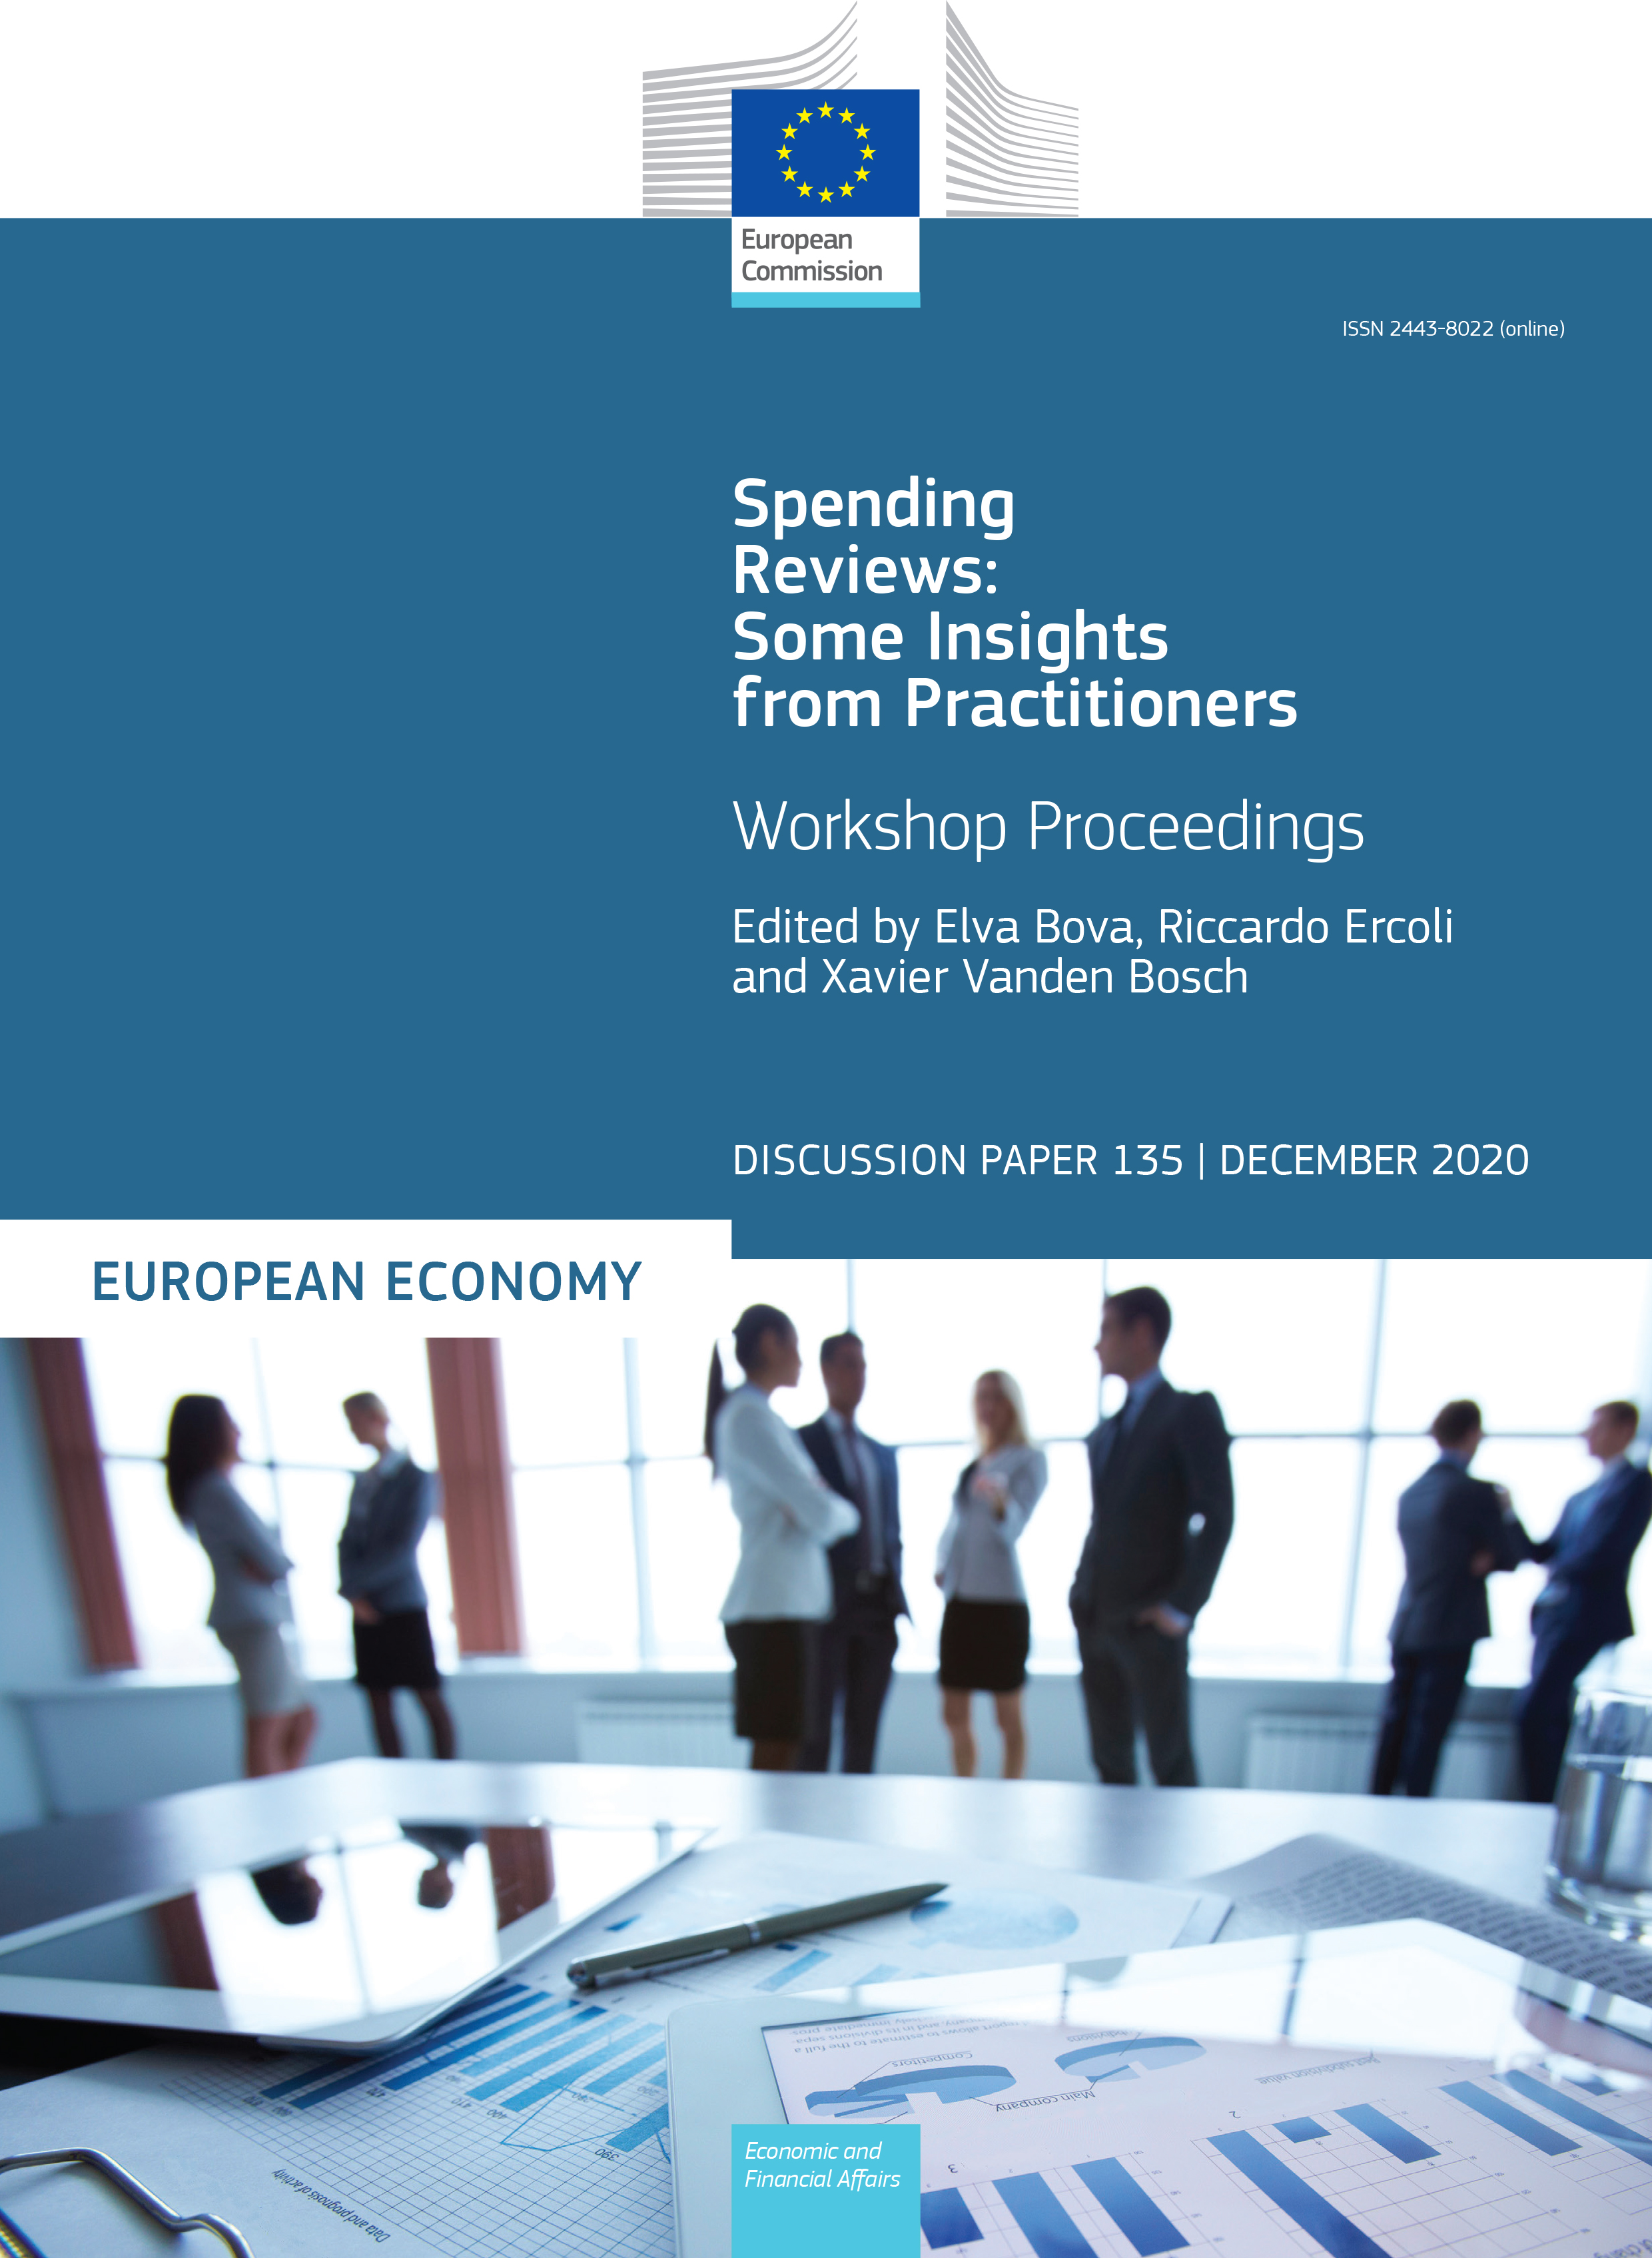 Spending Reviews: Some Insights from Practitioners